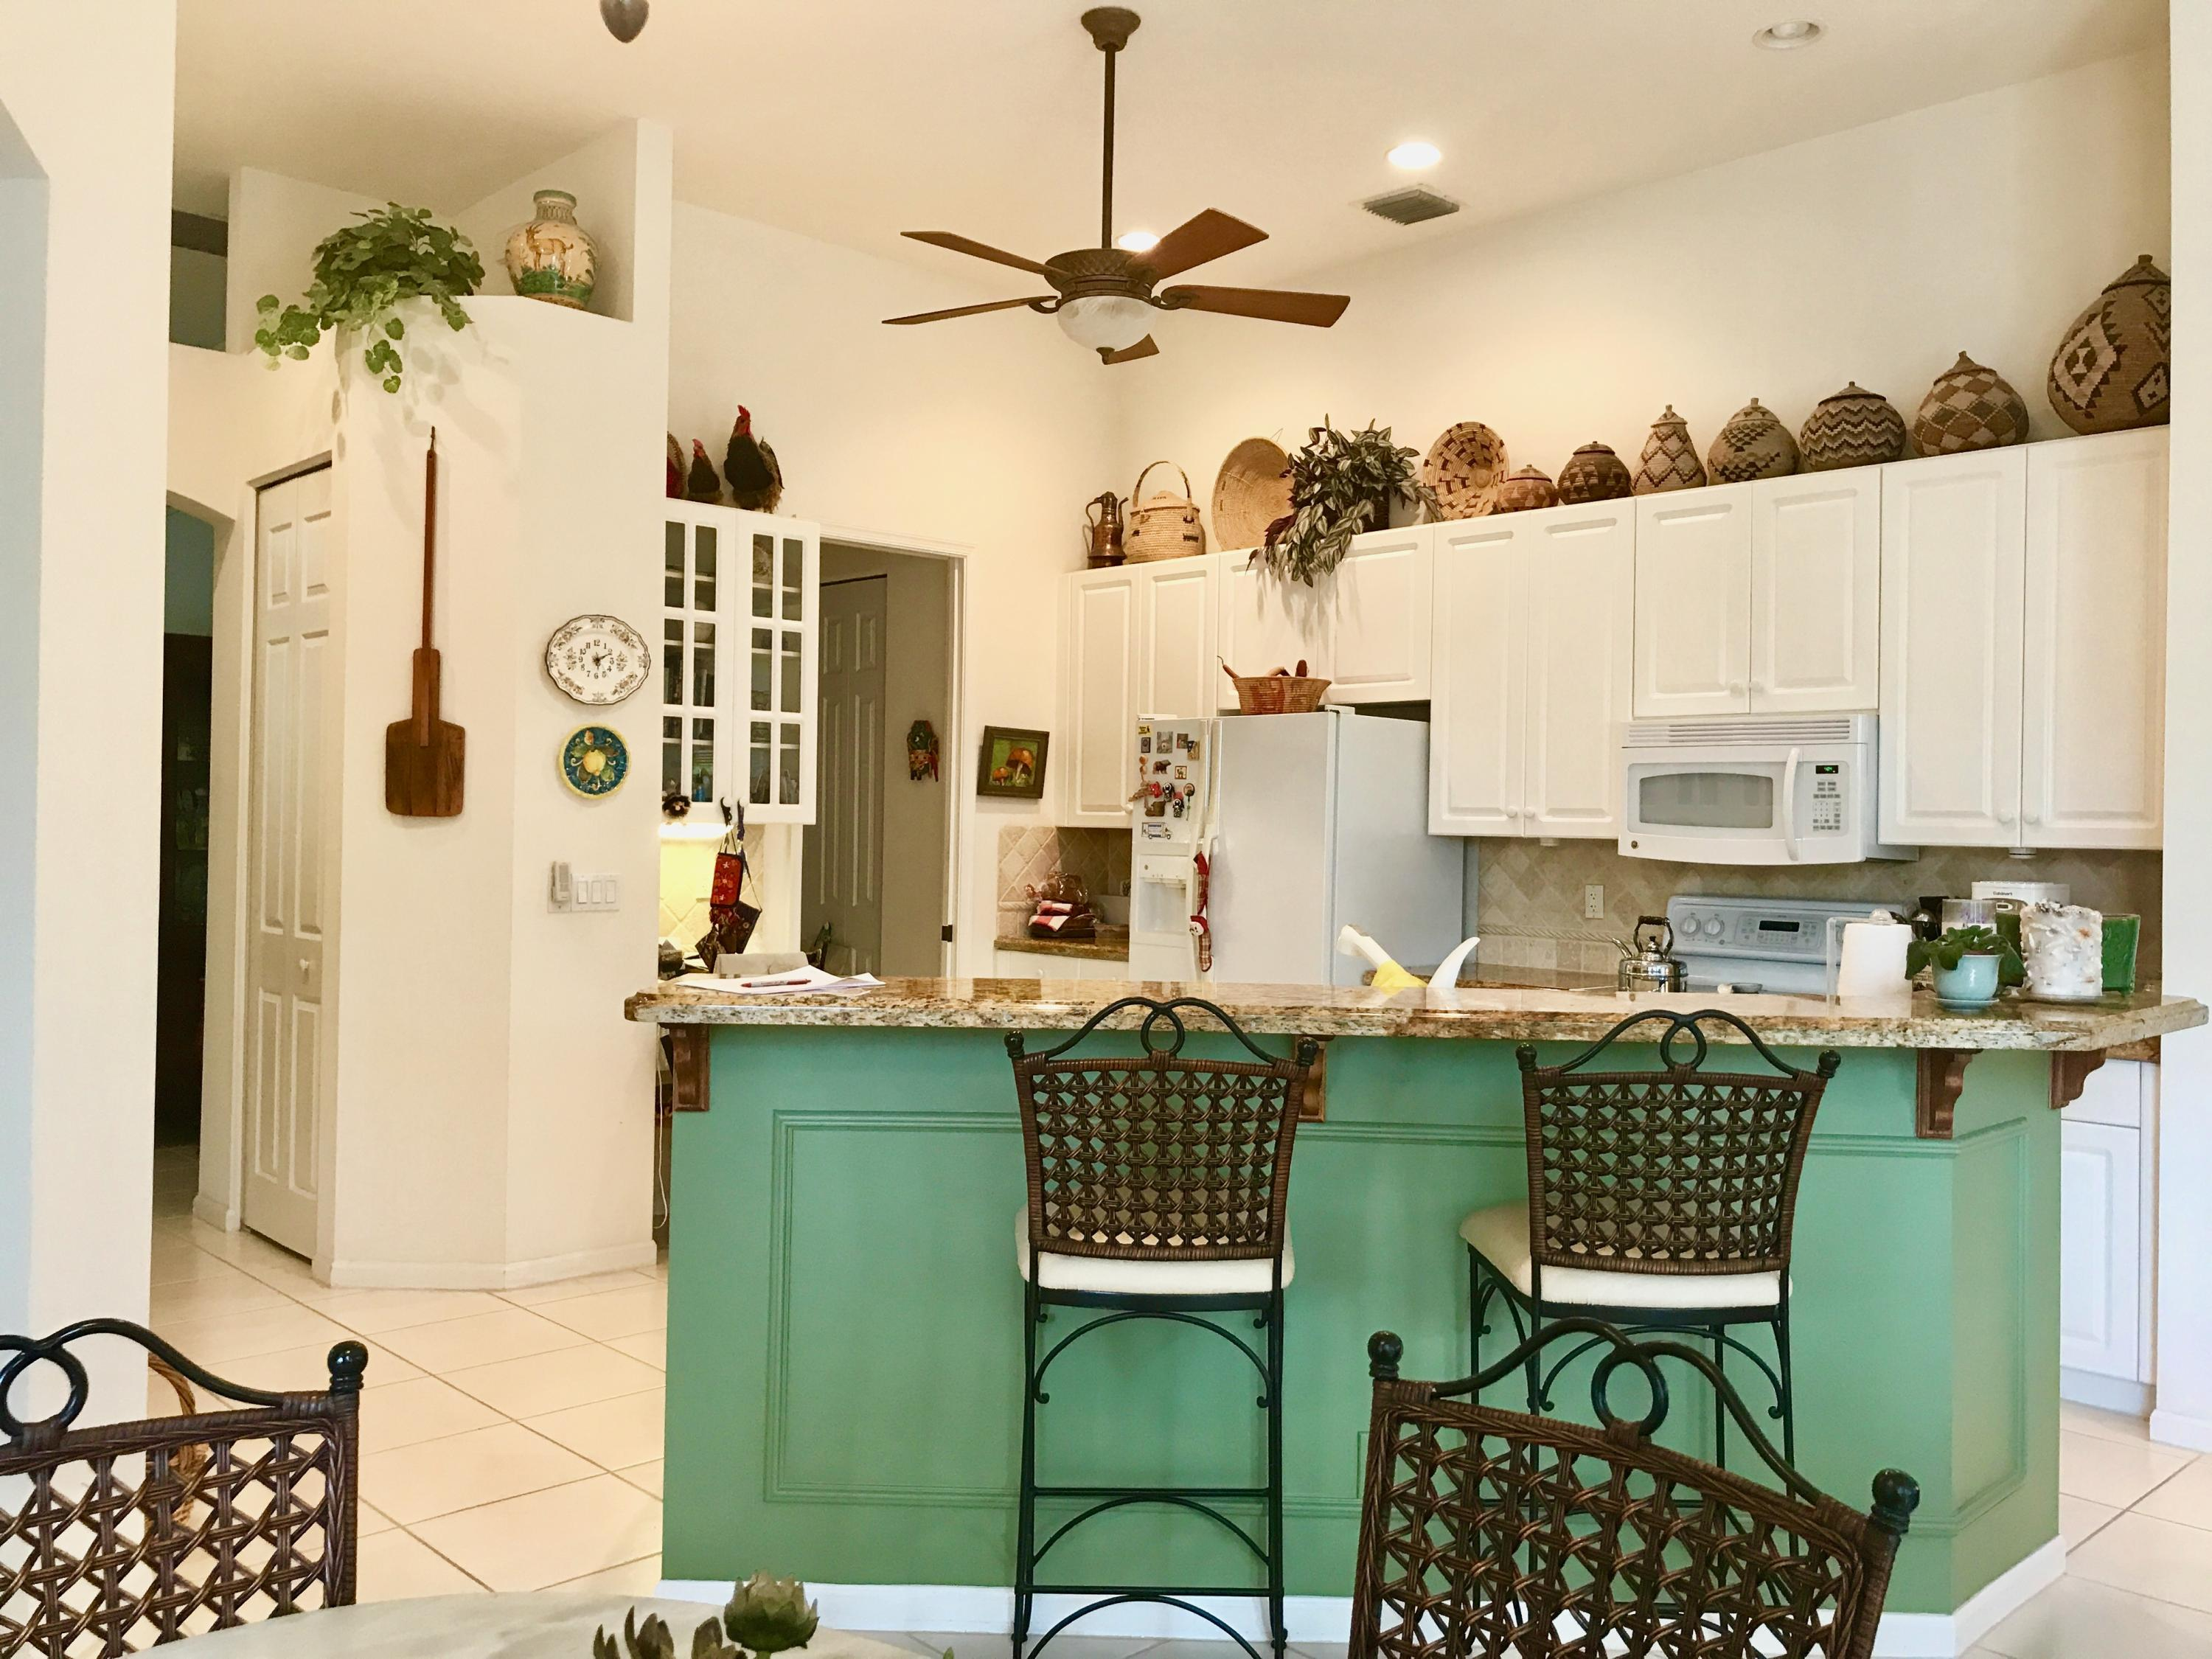 Kitchen with snack bar